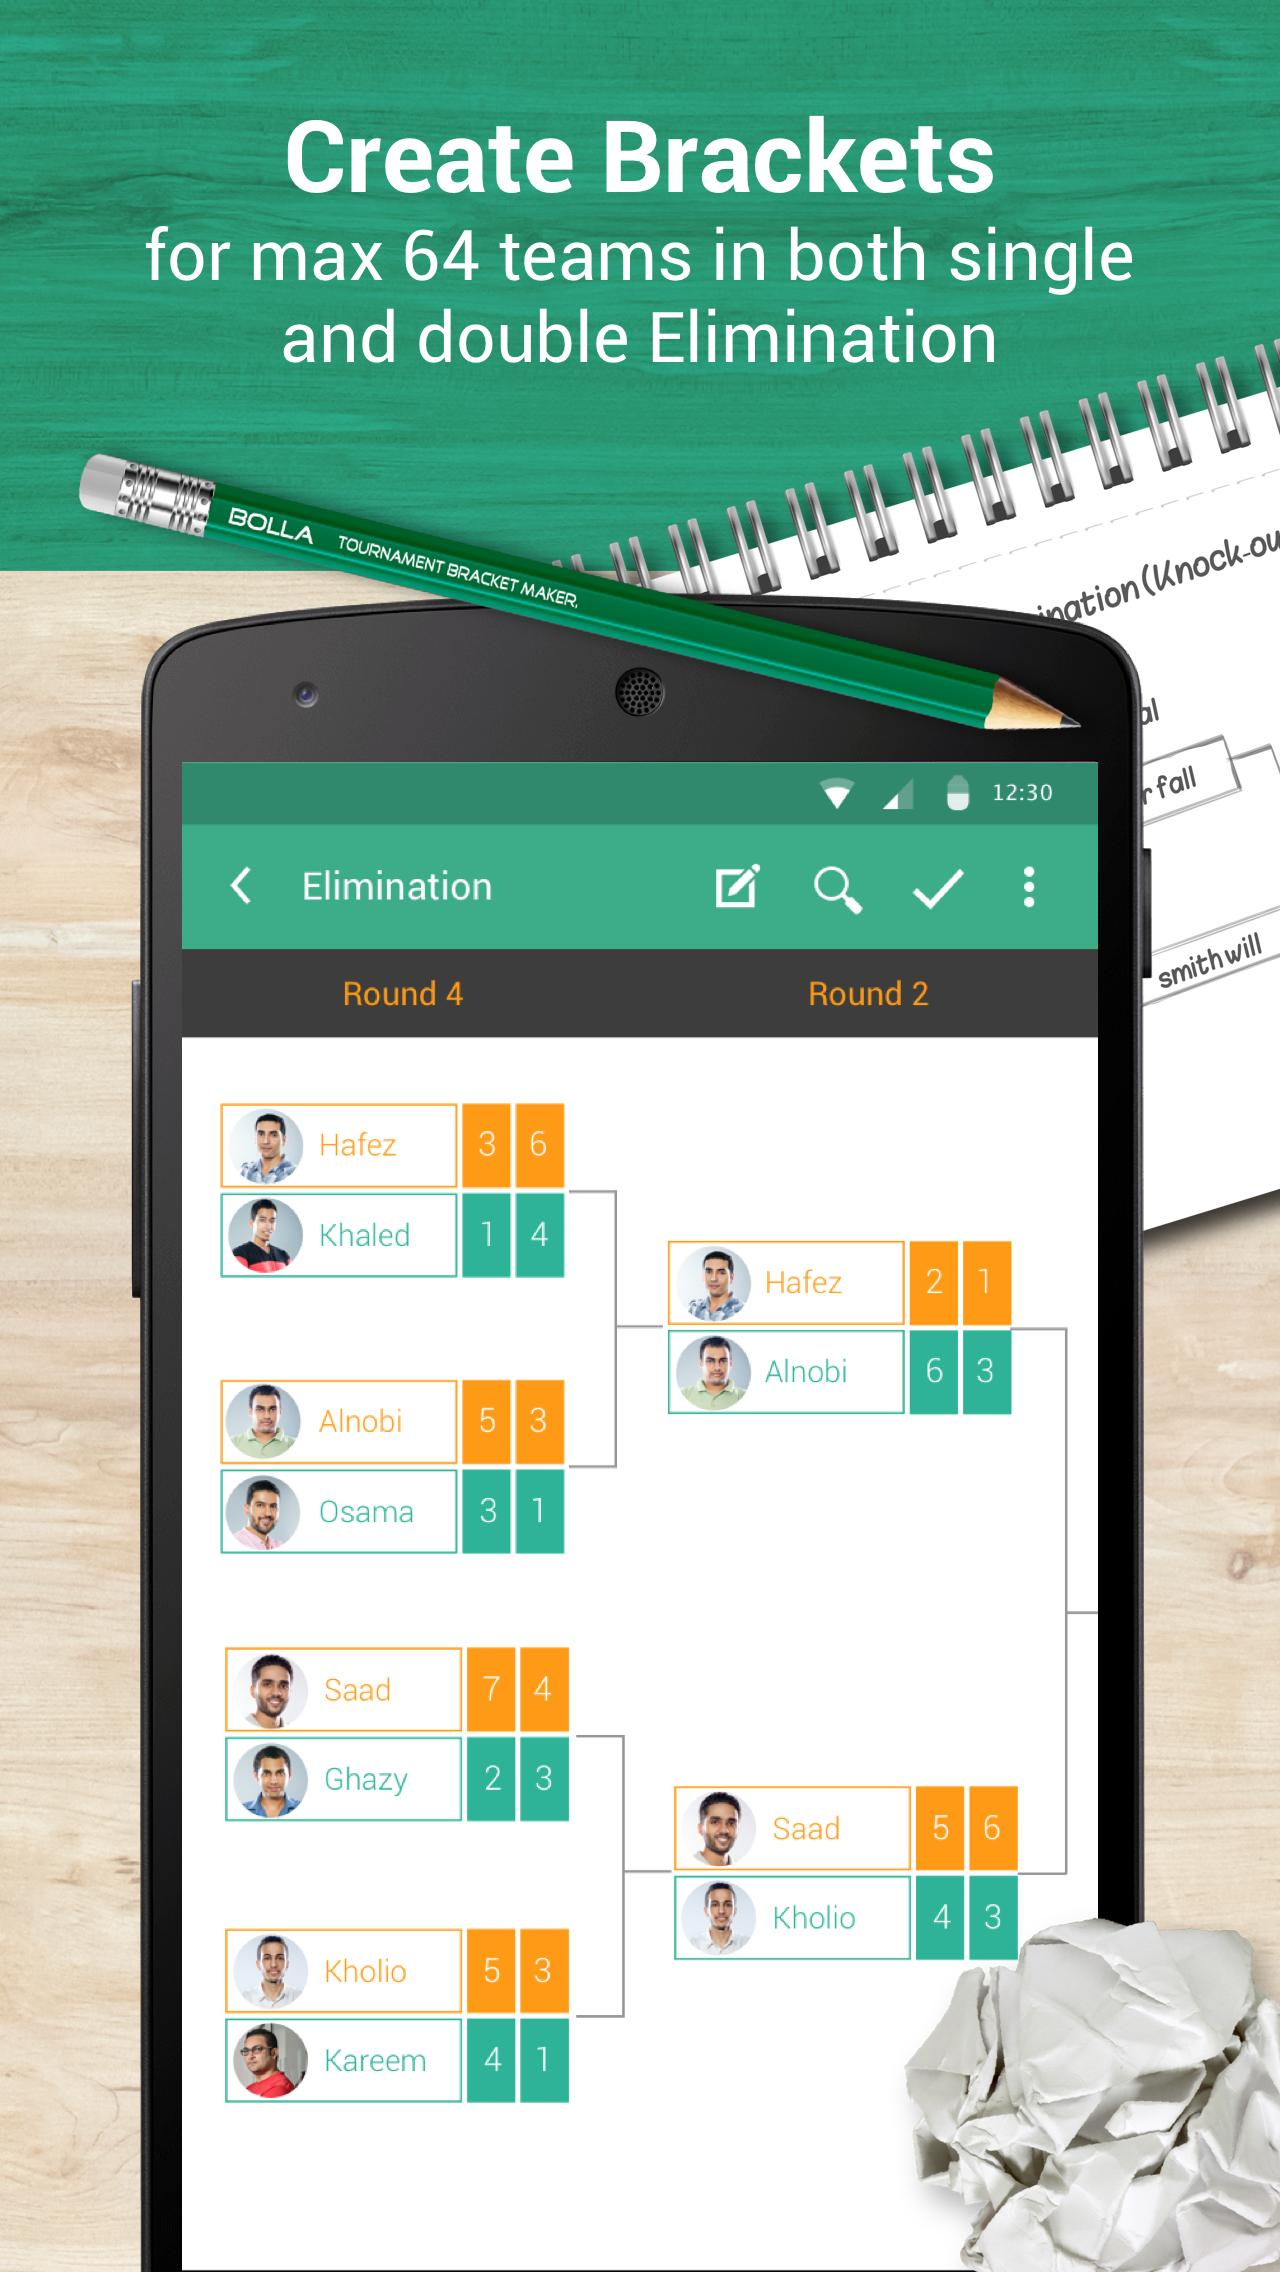 Bolla Tournament Bracket Maker for Android - APK Download